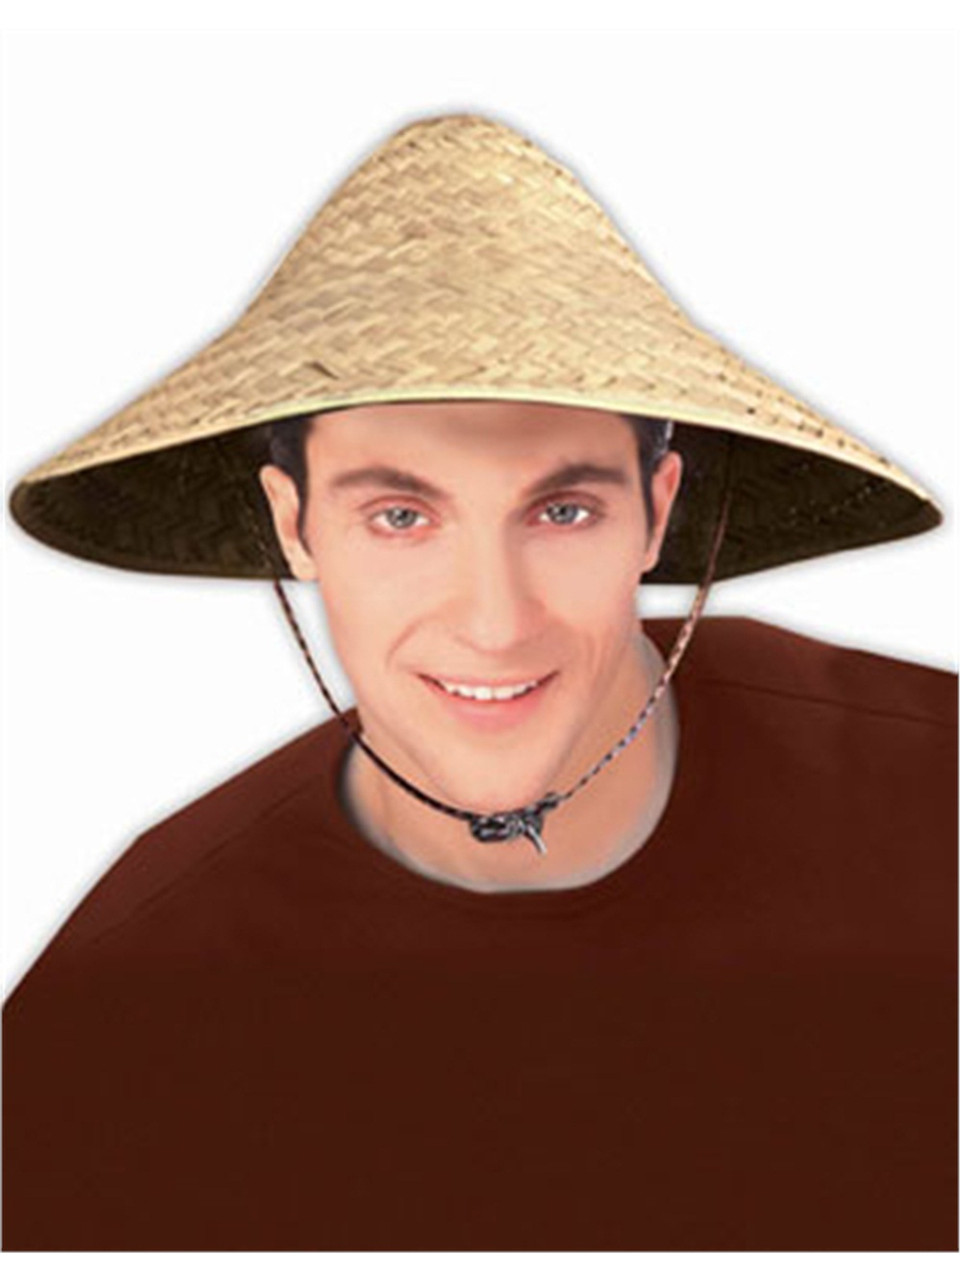 75505ec25 Adult Straw Costume Accessory Coolie Conical Asian Hat